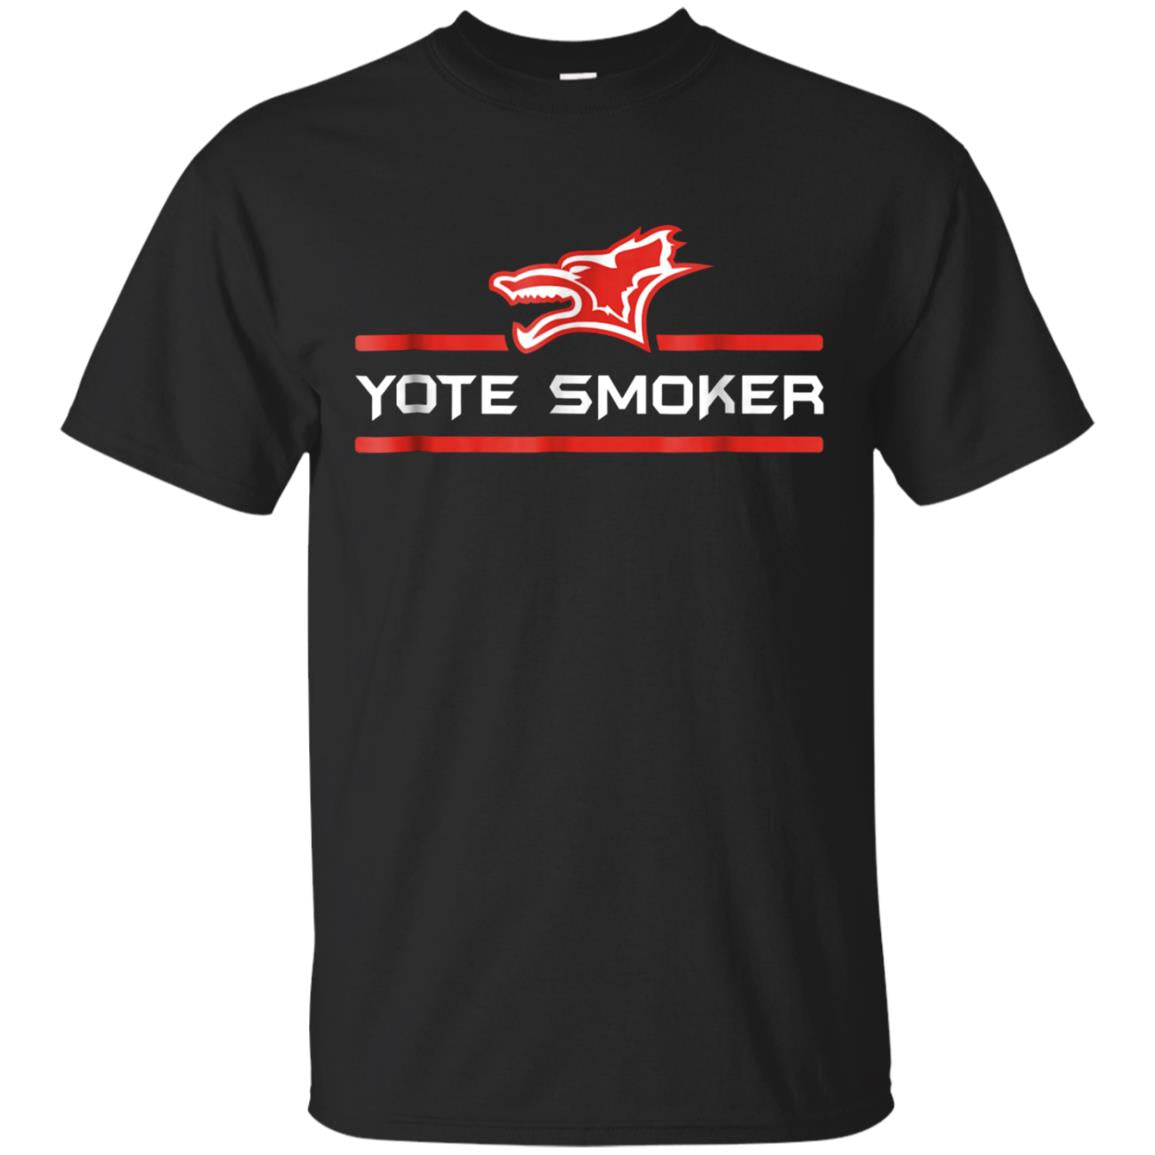 Yote Smoker T-Shirt | Coyote Animal Hunting Tee